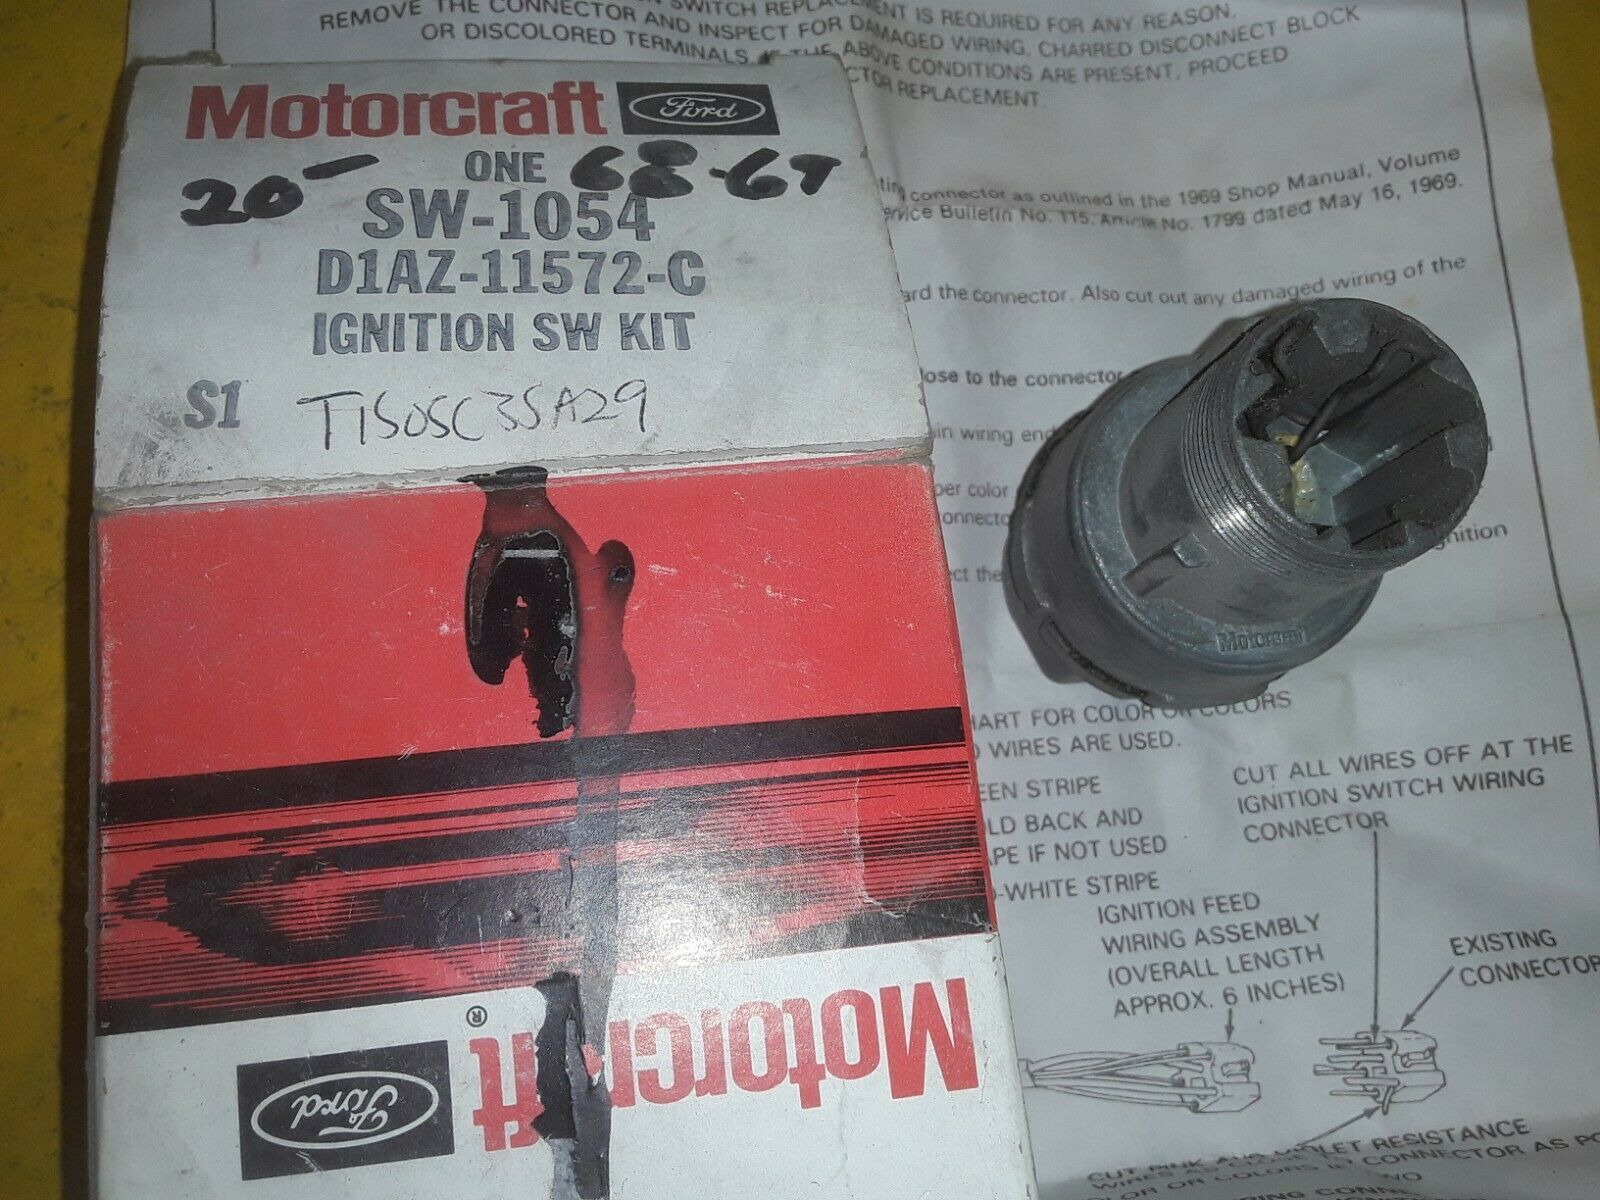 NOS Motorcraft SW1054 Ignition Starter Switch D1AZ-11572-C